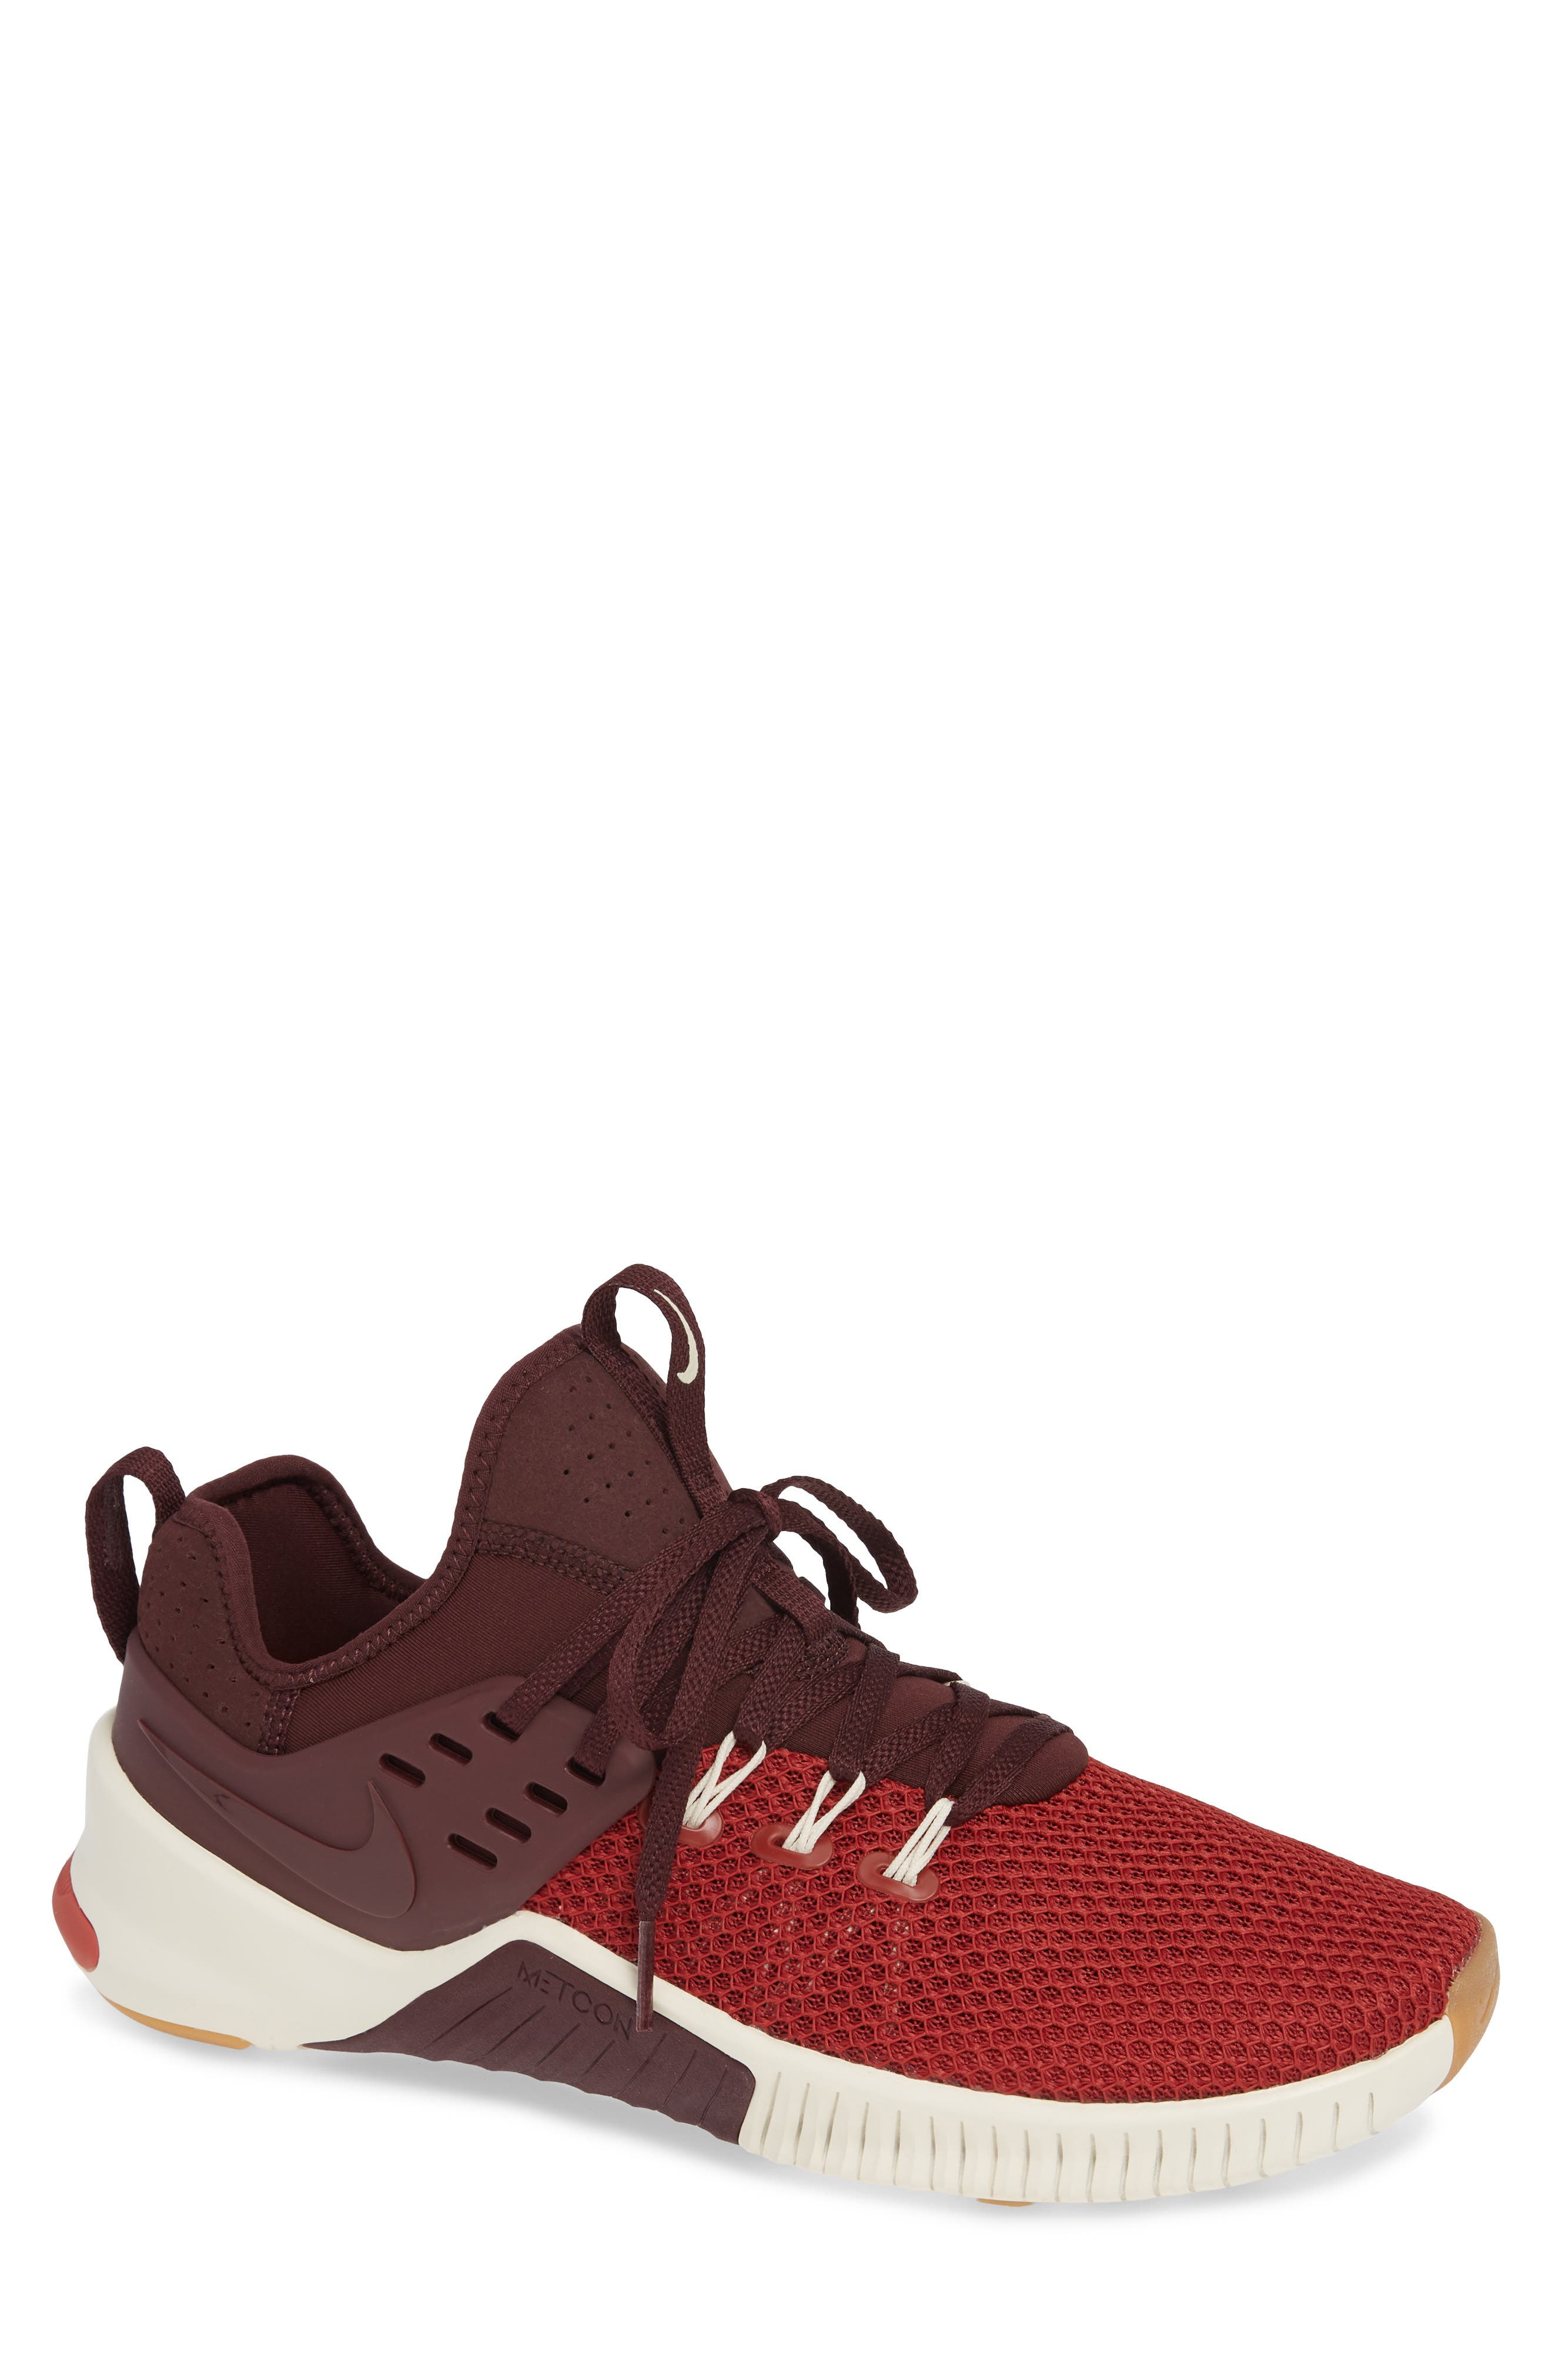 Free x Metcon Training Shoe,                             Main thumbnail 1, color,                             936